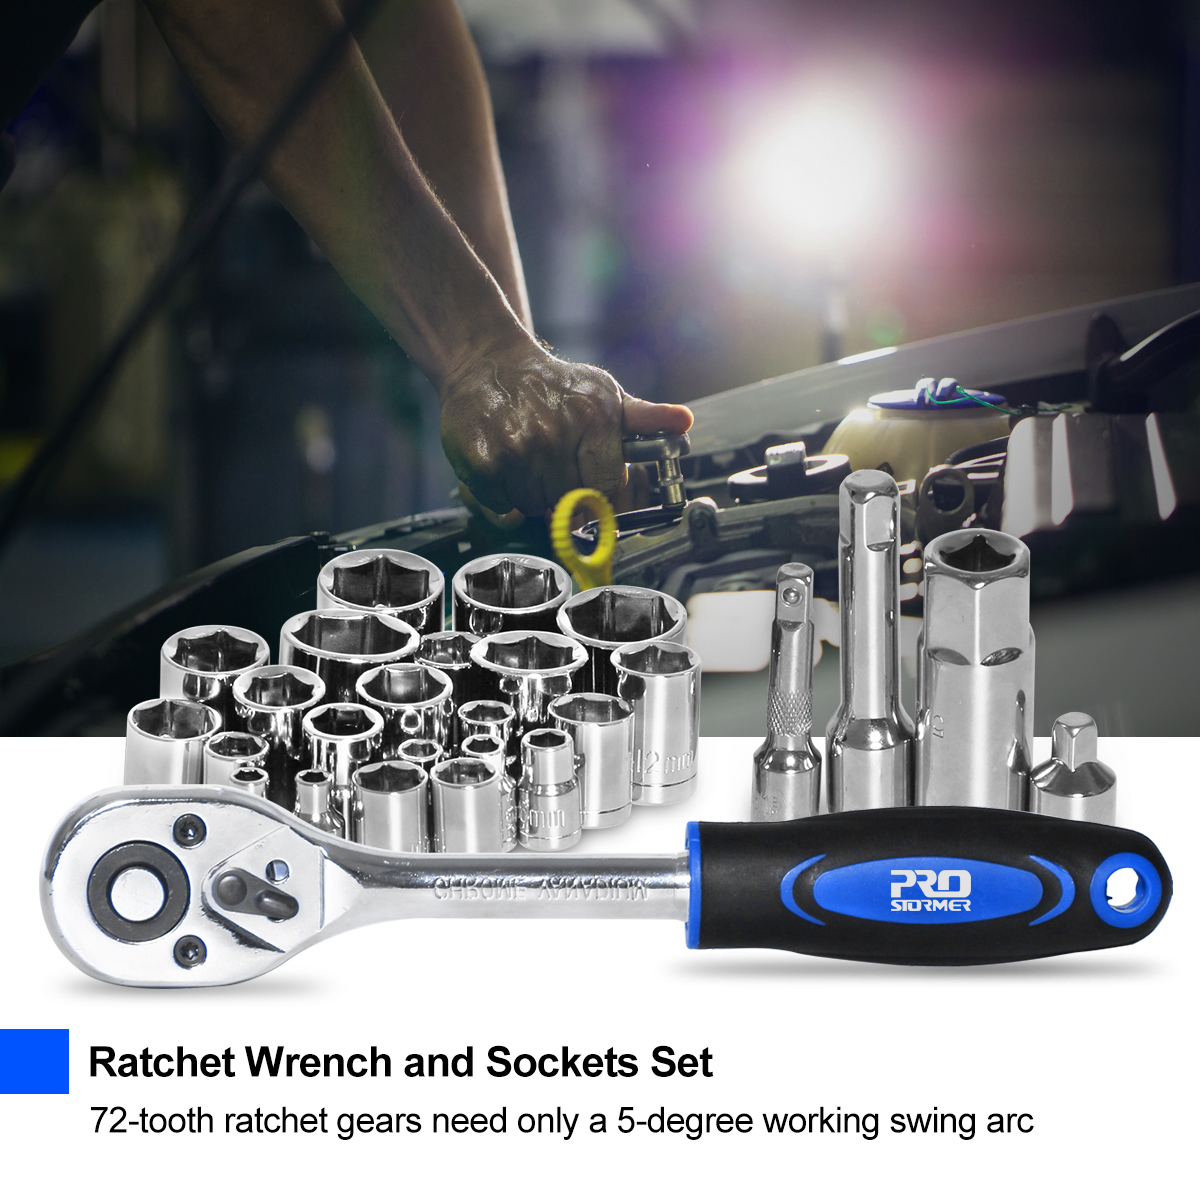 Ratchet Wrench and Sockets set